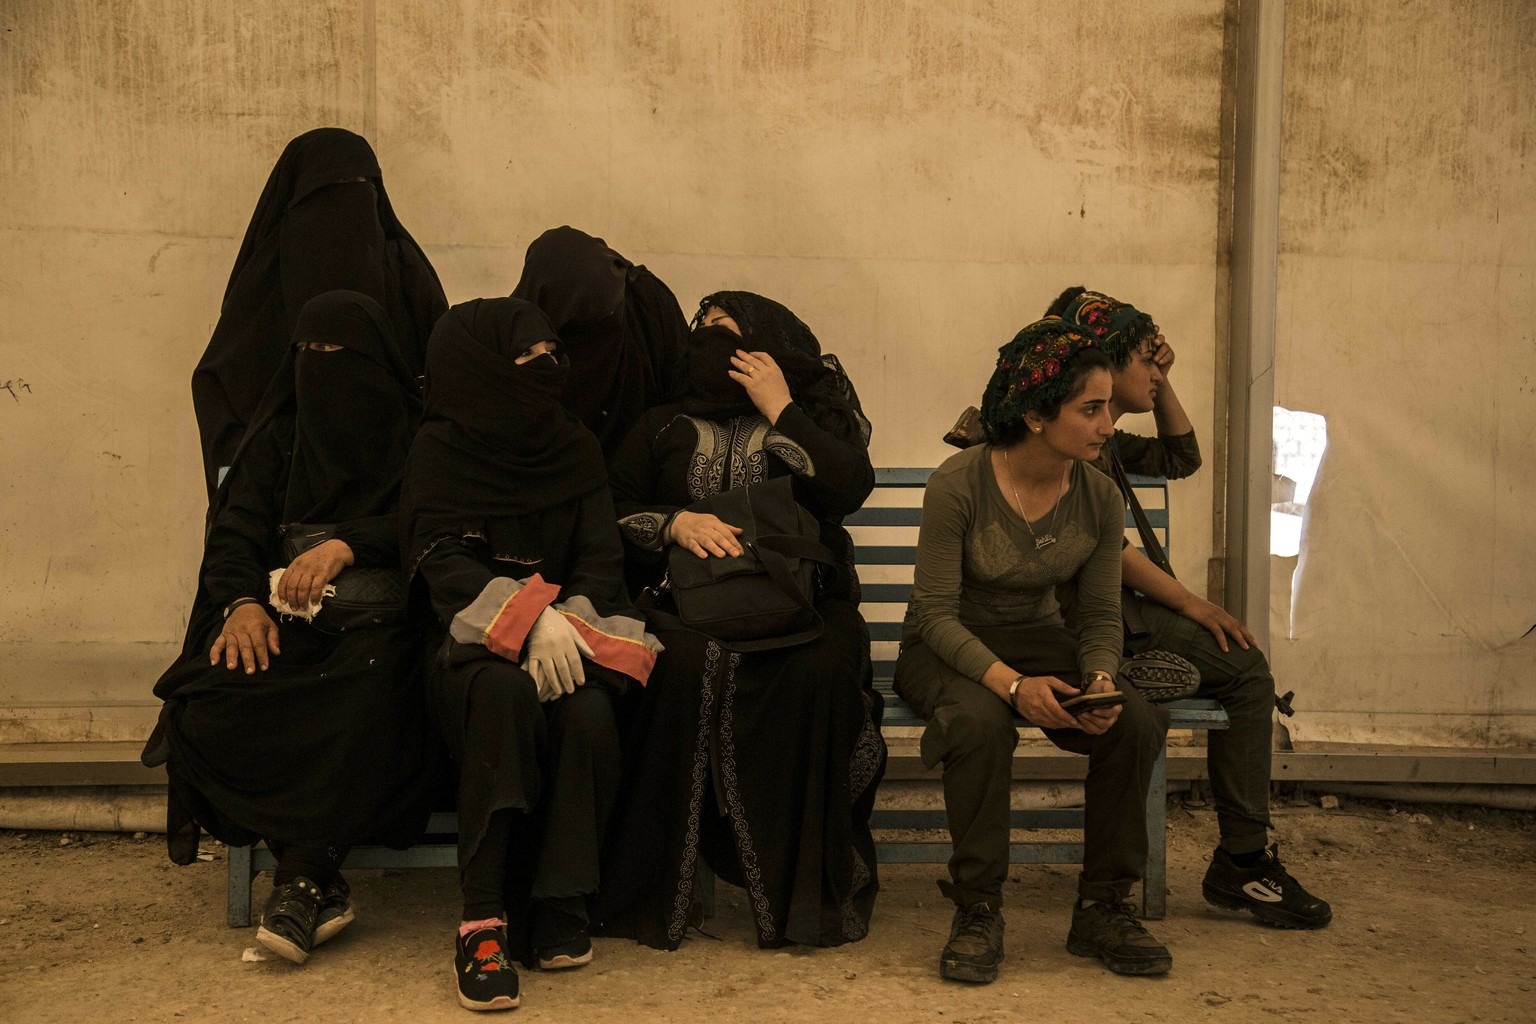 Women related to fighters of the Islamic State group sit next to Syrian Democratic Forces guards as they wait to board buses and trucks, leaving the overcrowded a an overcrowded al-Hol camp to return to their homes on Monday, June 3, 2019, in Hasakeh province, Syria. The departure is the largest since the IS group's territorial defeat in Syria in March, when the U.S.-backed SDF captured Baghouz, the last village controlled by the militants near the Iraqi border. (AP Photo/Baderkhan Ahmed)